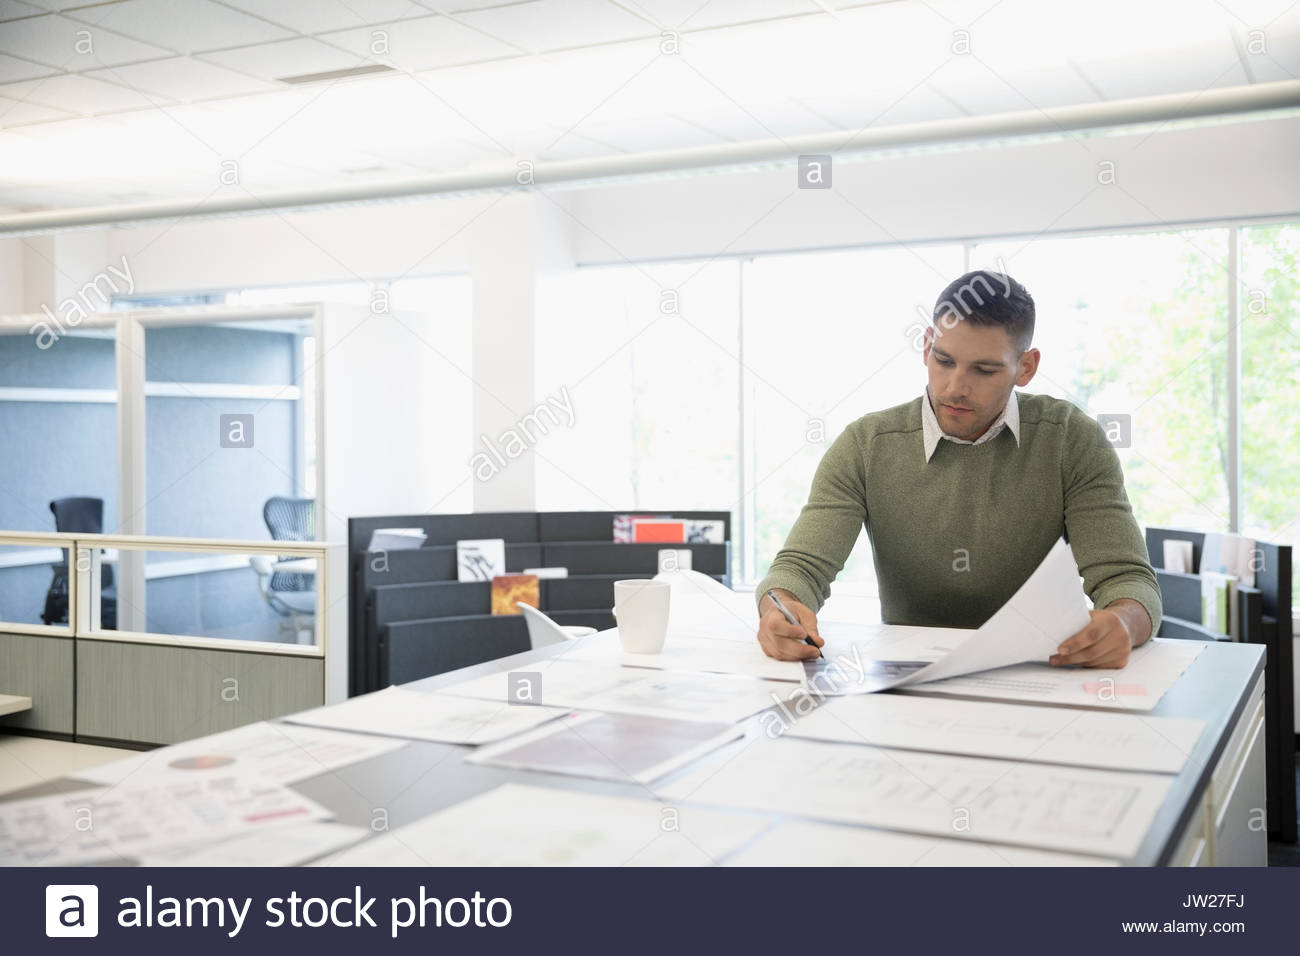 Male architect reviewing blueprints at table in office - Stock Image